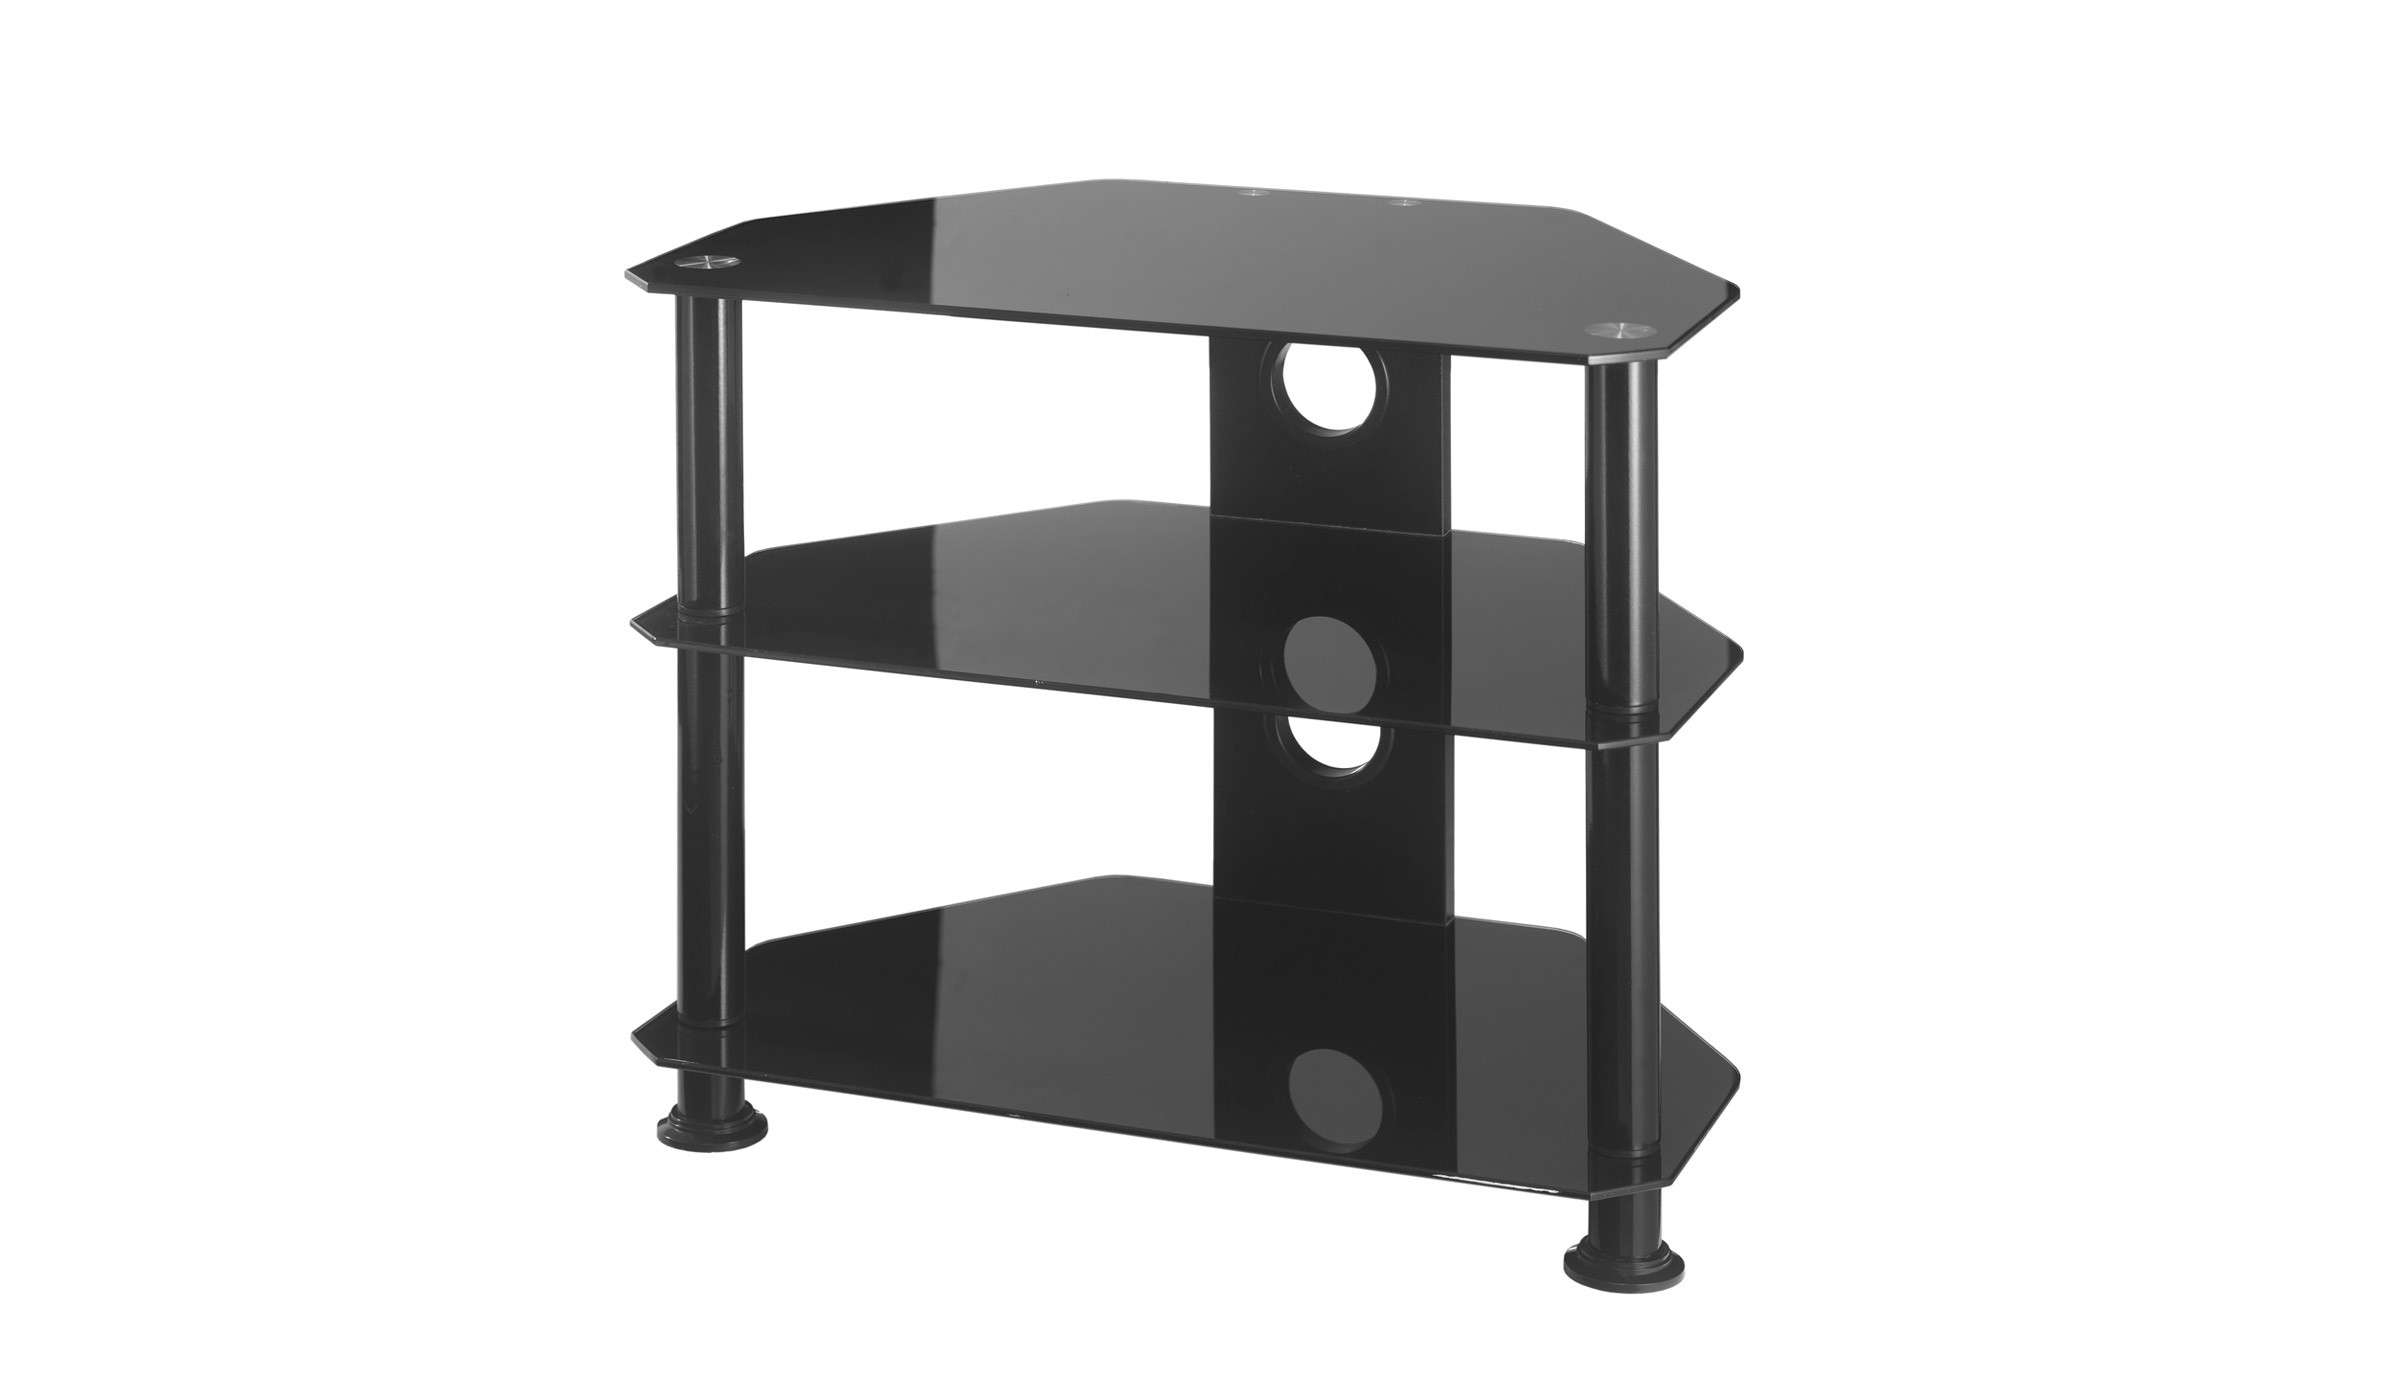 Small Glass Corner Tv Stand Up To 26 Inch Tv | Mmt Db600 Inside White Cantilever Tv Stands (View 20 of 20)